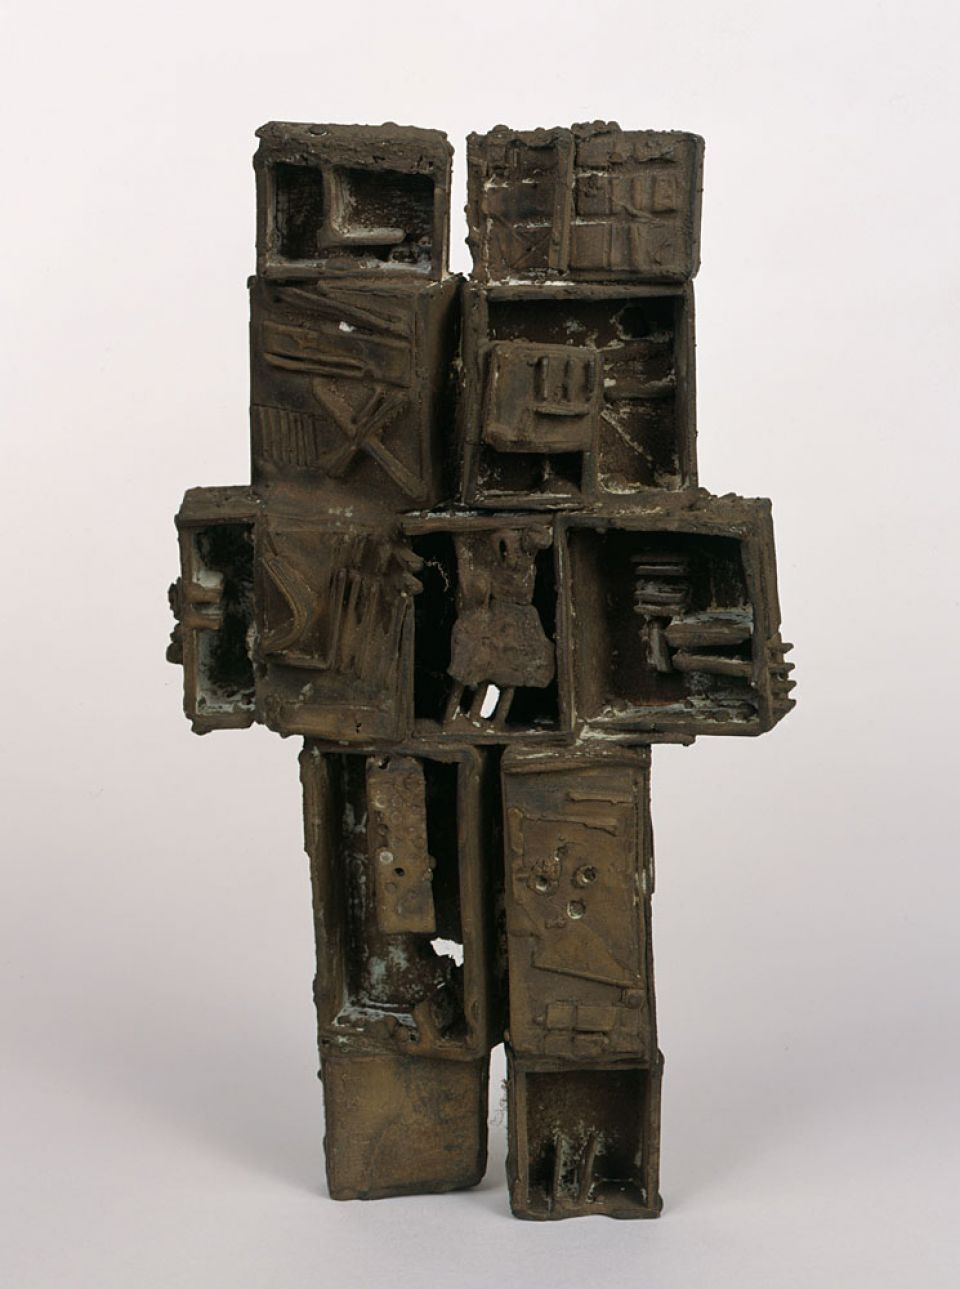 E.R. Nele, Untitled (1964, bronze)